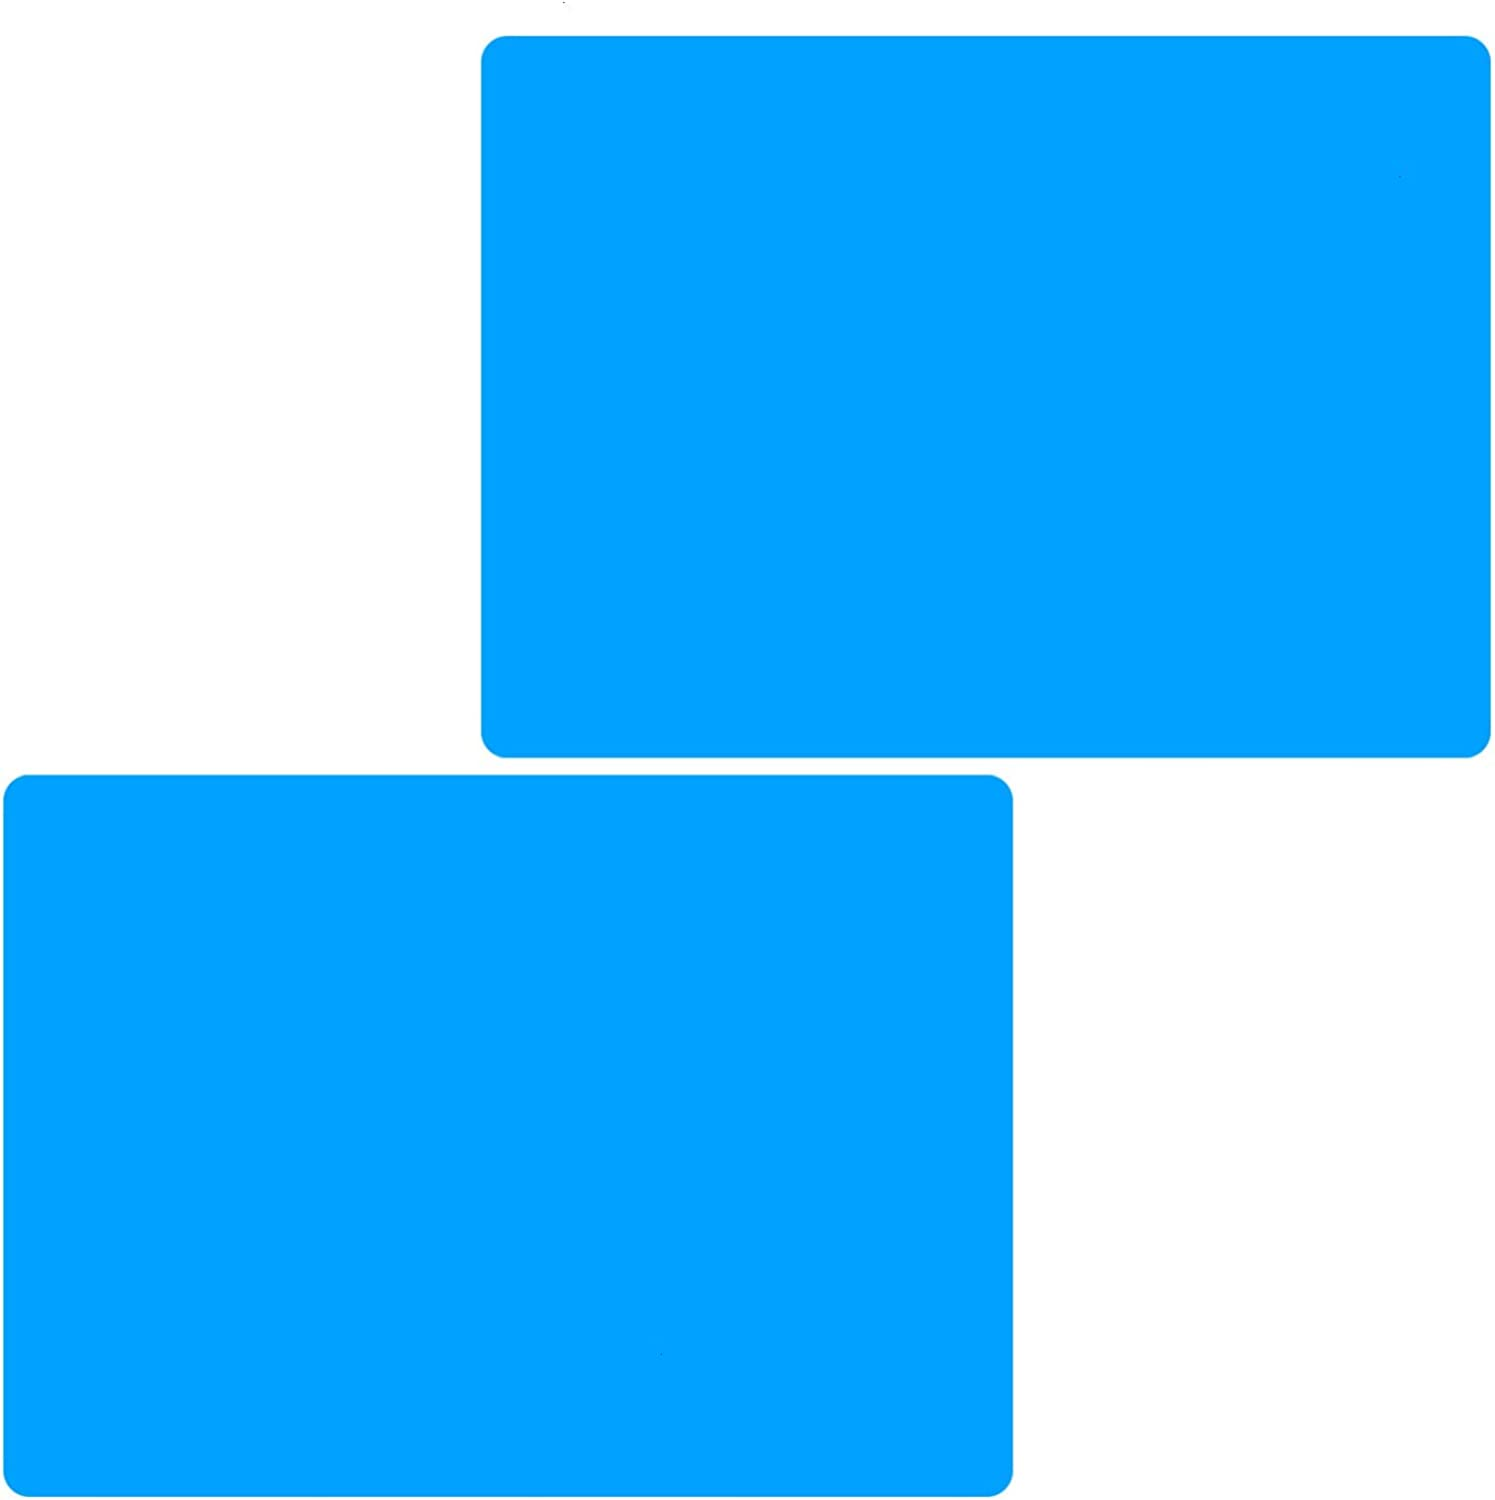 AQUEENLY 2 PCS Silicone Sheet for Crafts Jewelry Casting Molds Mat, Food Grade, Blue, 11.8 inches x 15.7 inches